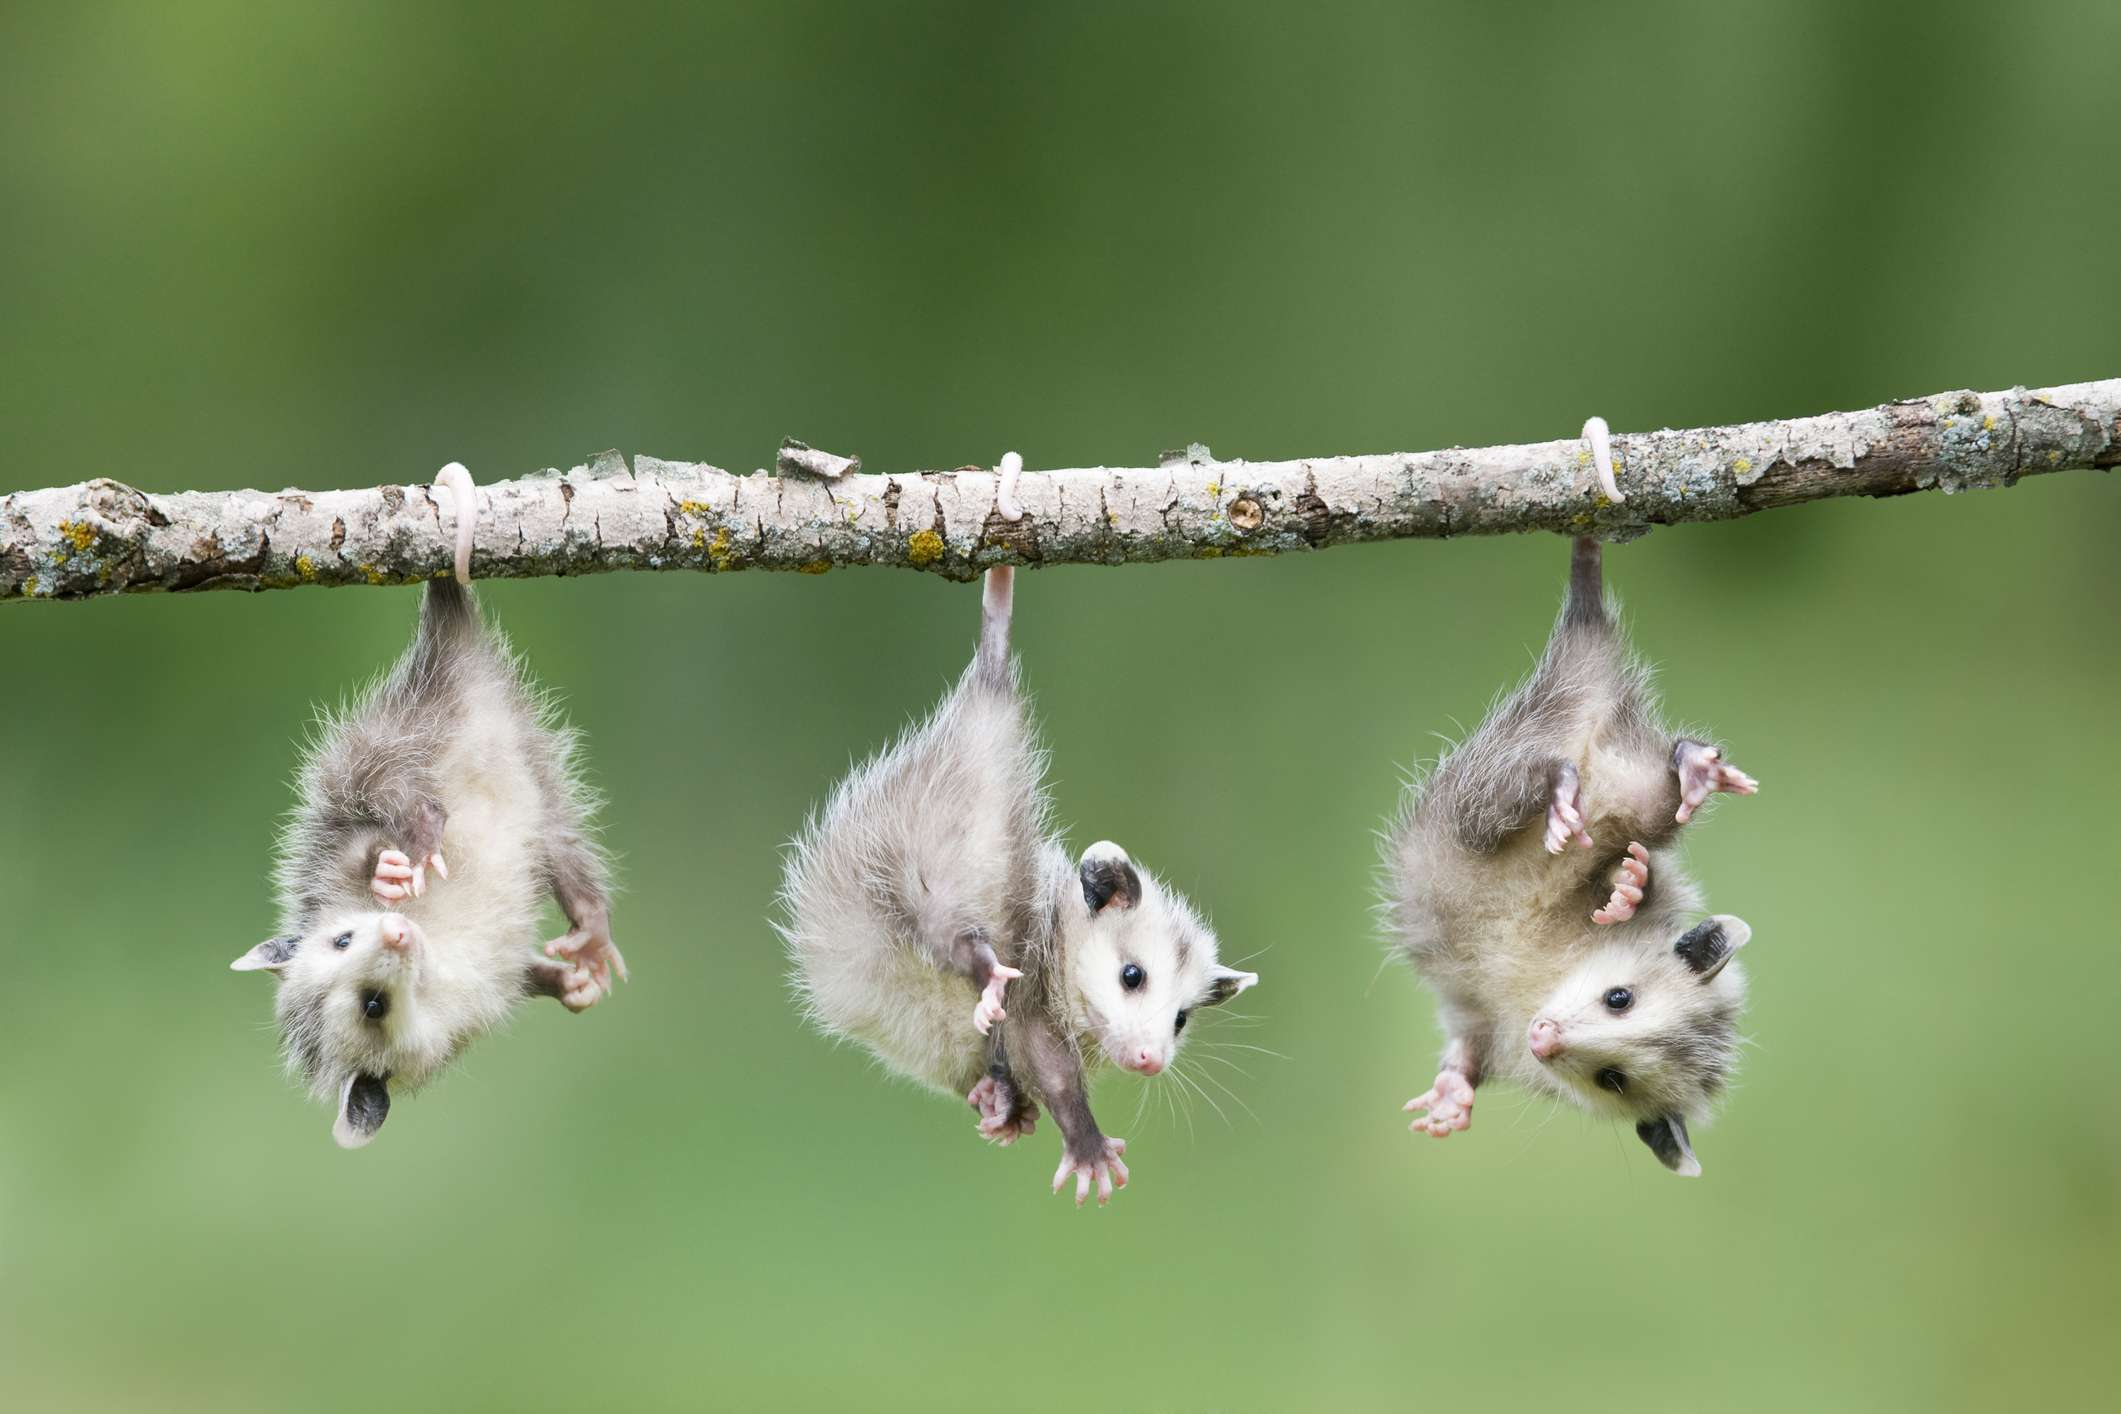 Opossums have prehensile tails and opposable thumbs on their rear feet.